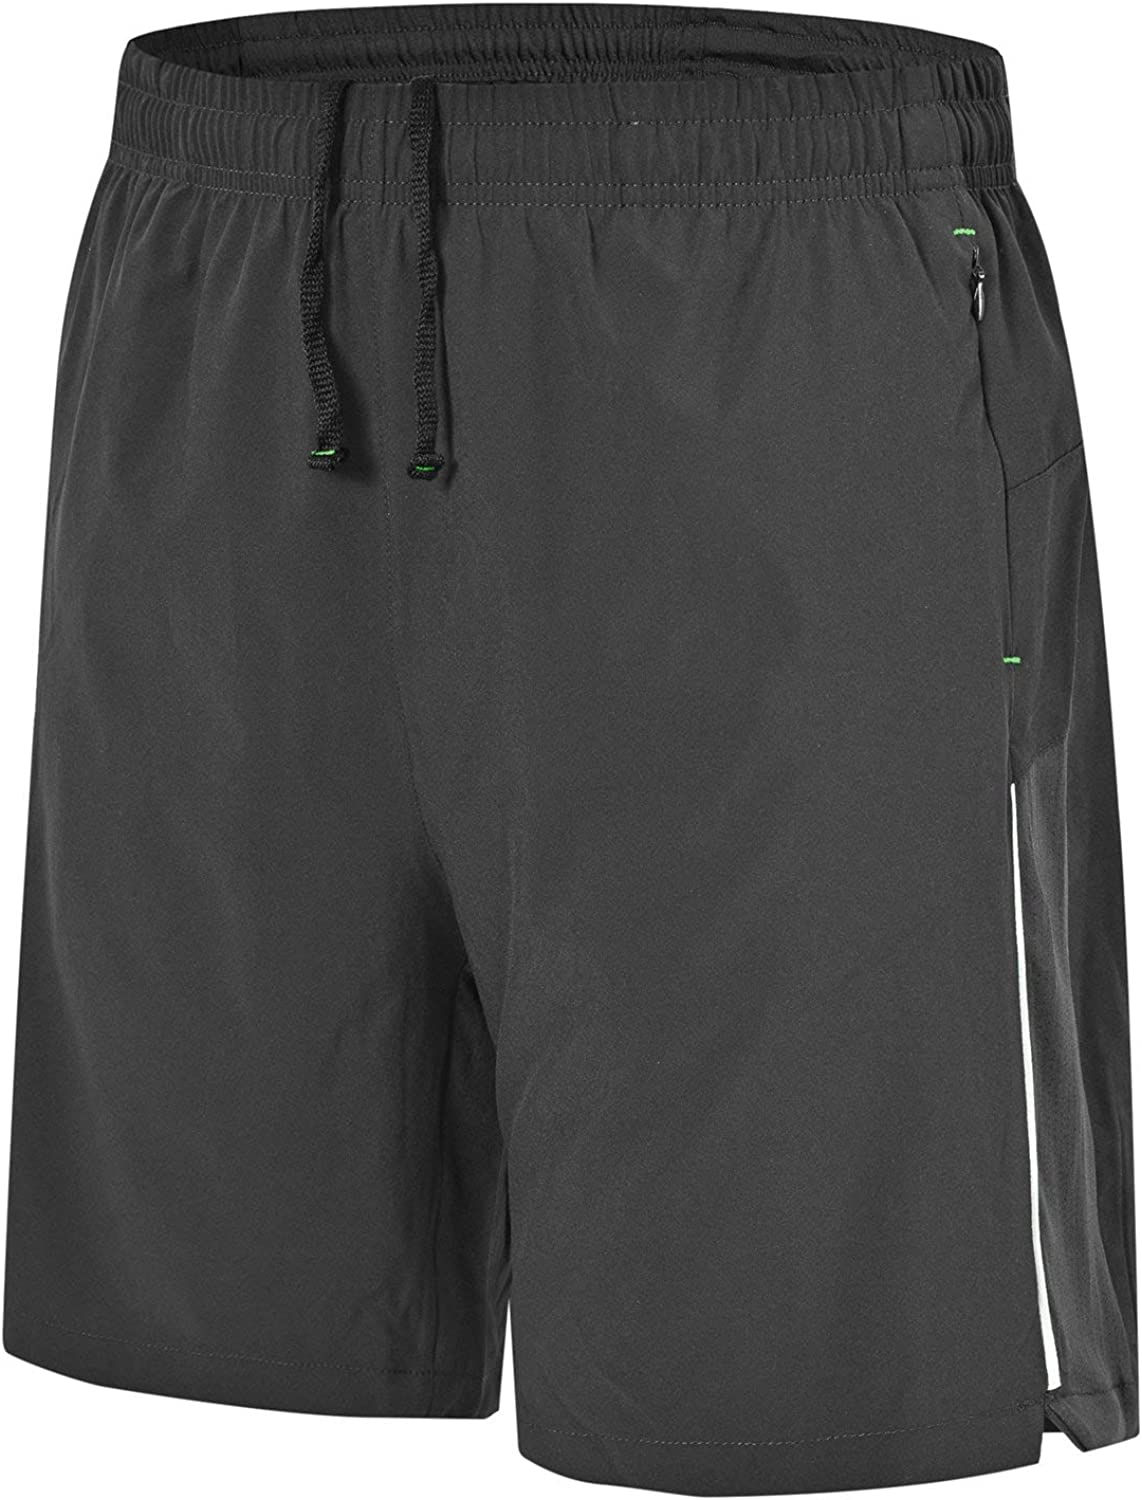 Rdruko Men's Workout Running Shorts Quick Dry Lightweight Gym Shorts with Mesh Liner